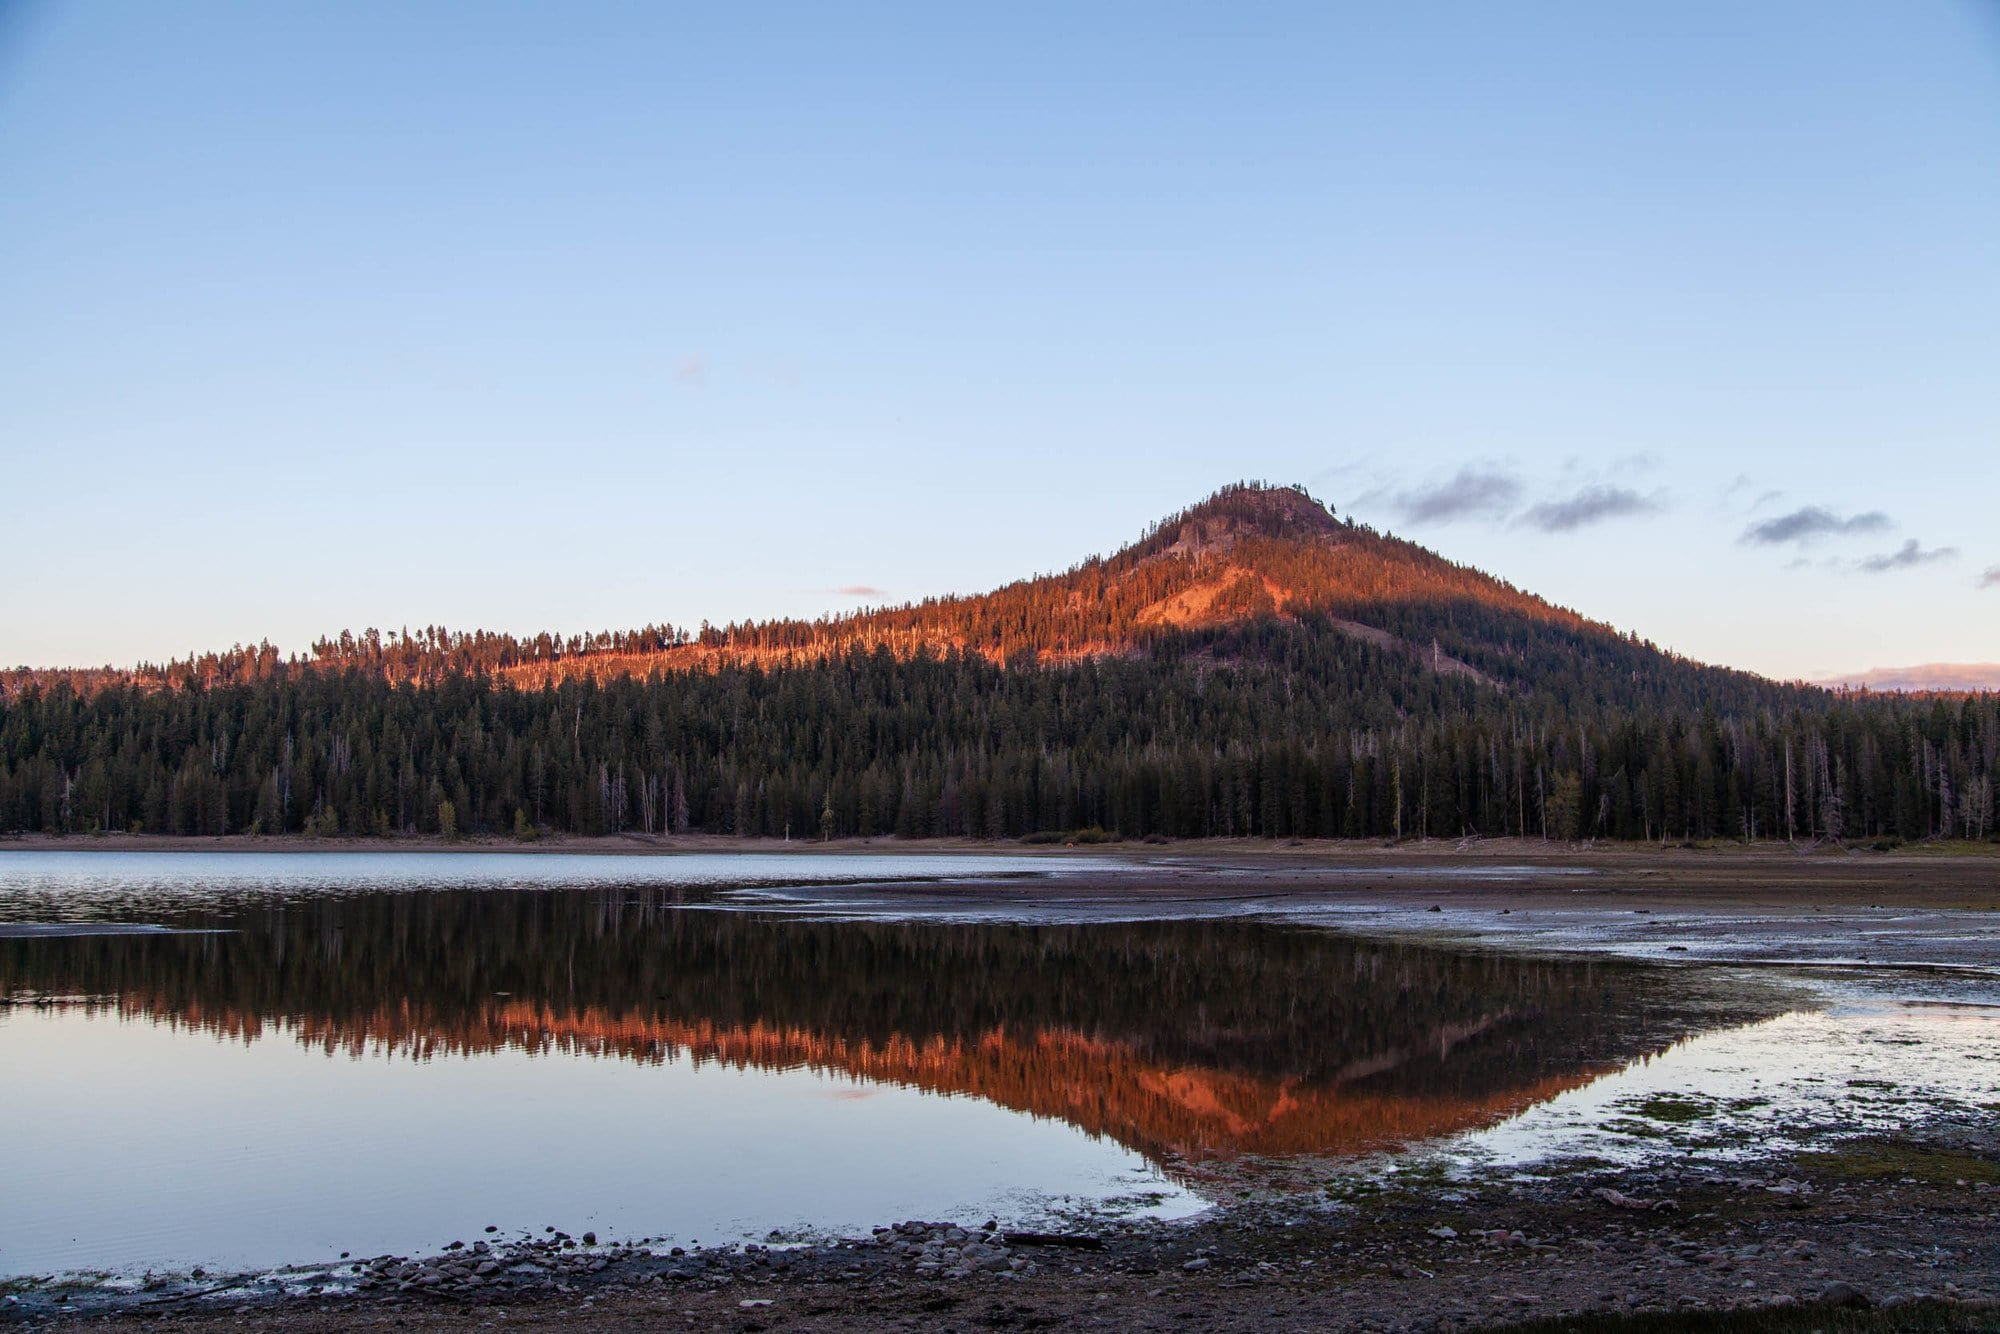 Snag Lake // Plan your Lassen National Park hikes with our roundup of the best hikes, including boiling hot pots, alpine lakes, and big summits.